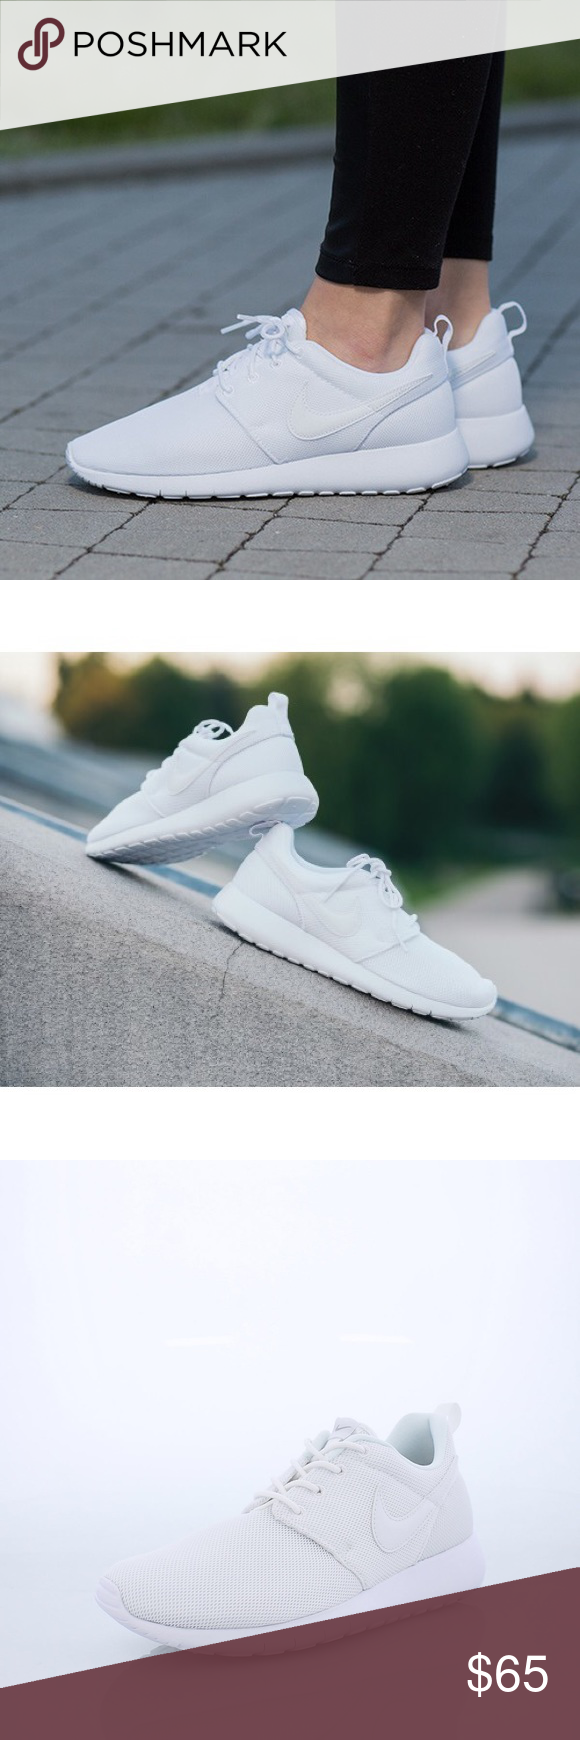 e2ed9deeb679 Nike roshe one all white shoes women s new Brand new without box ...